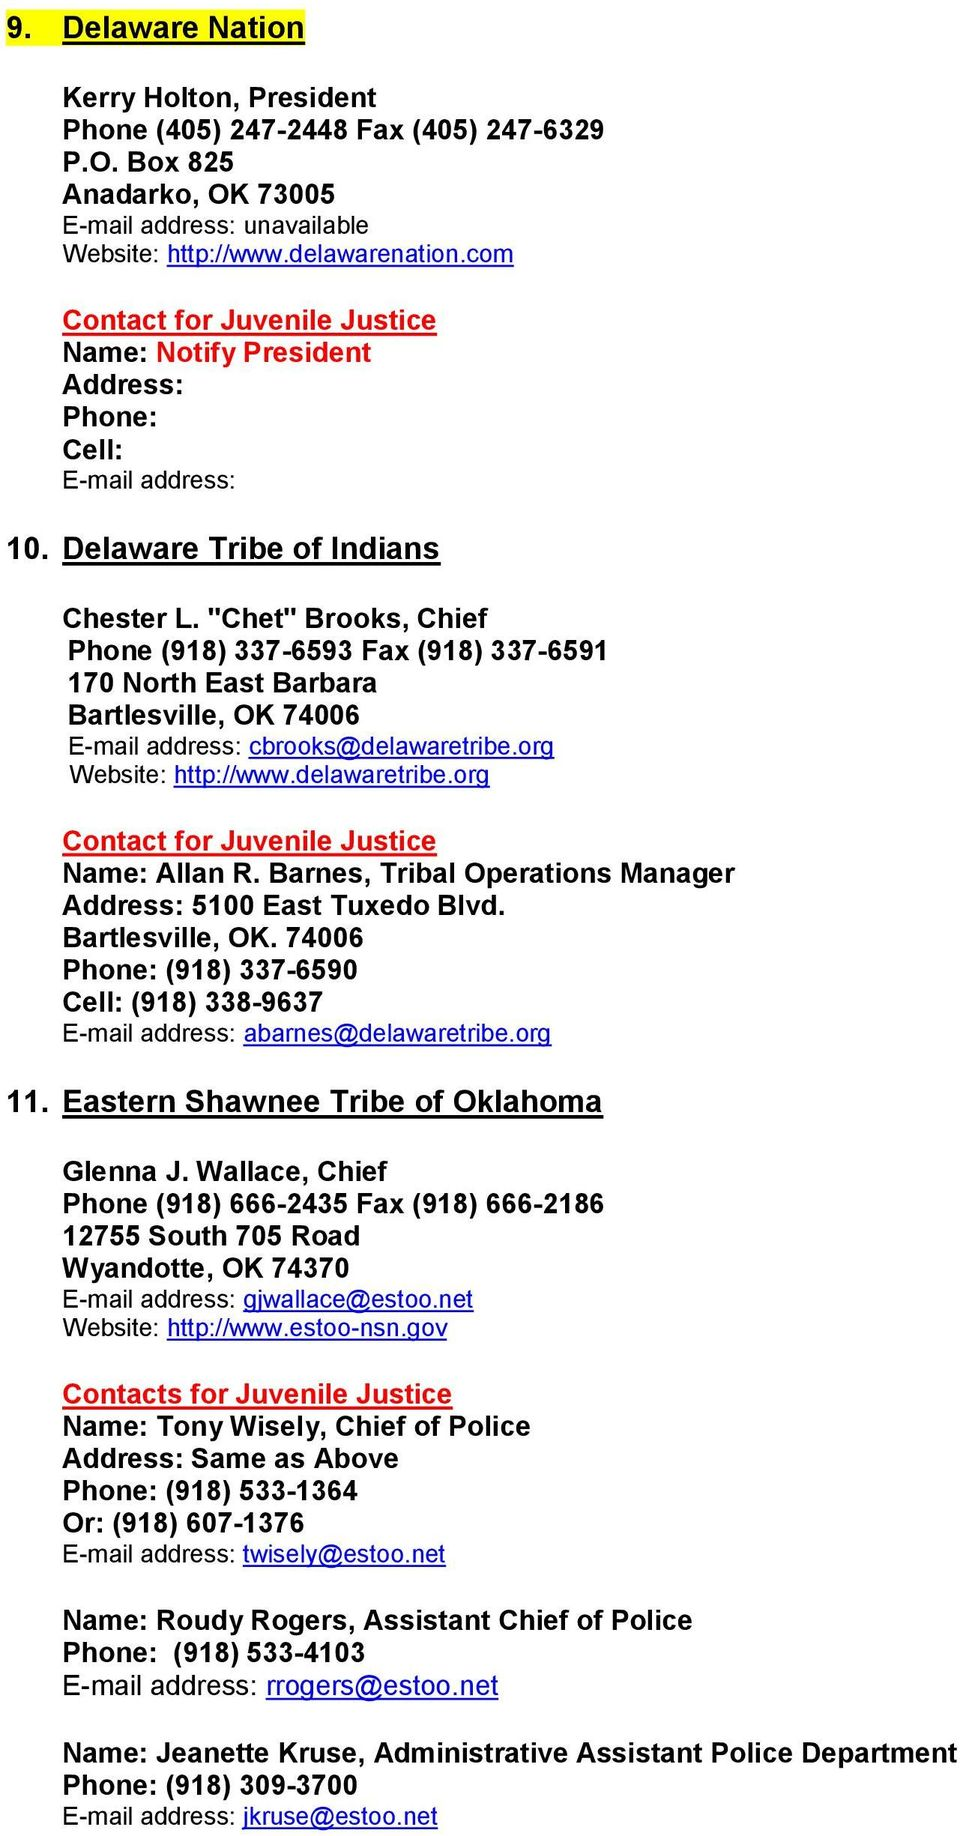 """Chet"" Brooks, Chief Phone (918) 337-6593 Fax (918) 337-6591 170 North East Barbara Bartlesville, OK 74006 E-mail address: cbrooks@delawaretribe.org Website: http://www.delawaretribe.org Name: Allan R."